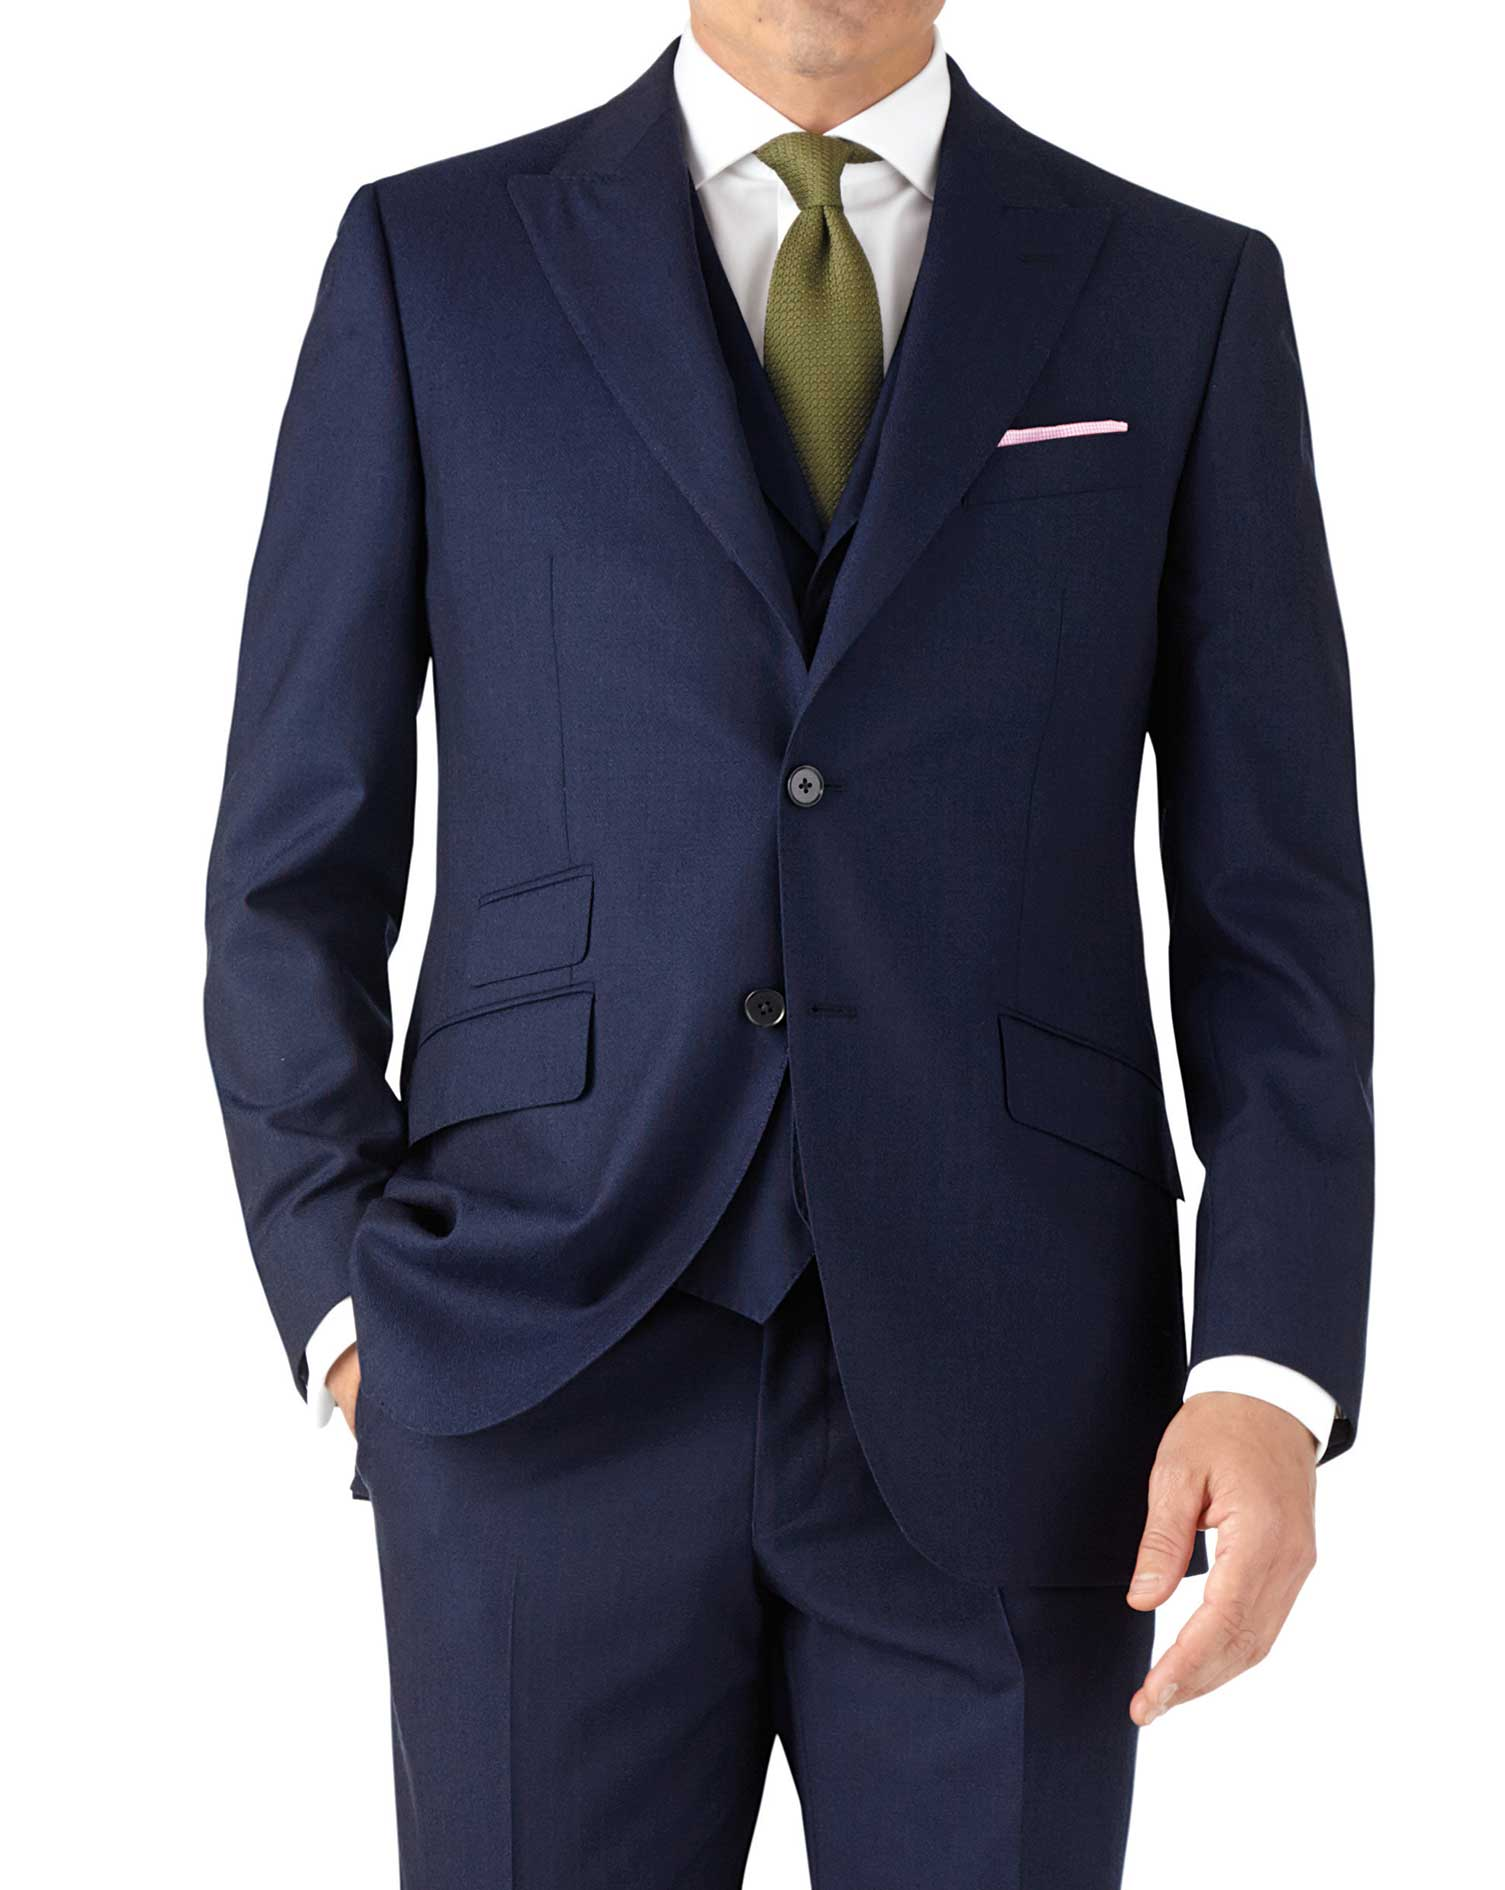 Blue Stripe Classic Fit Panama Business Suit Wool Jacket Size 48 Regular by Charles Tyrwhitt